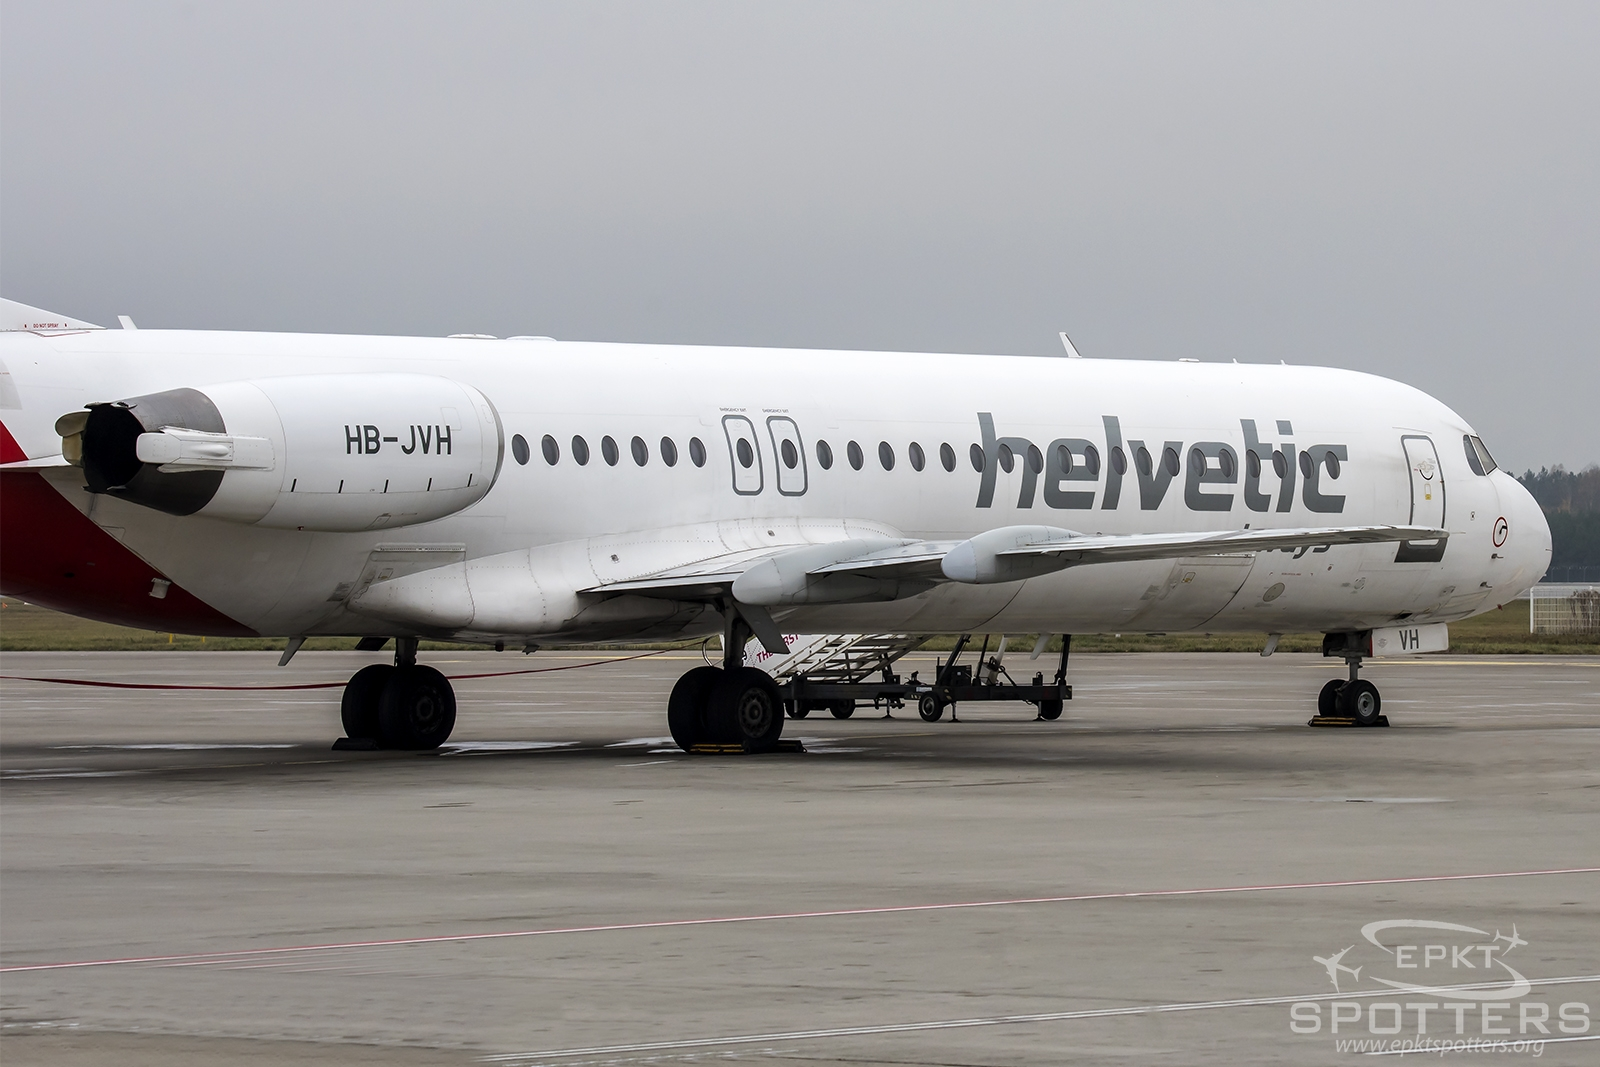 HB-JVH - Fokker 100  (Helvetic Airways) / Pyrzowice - Katowice Poland [EPKT/KTW]